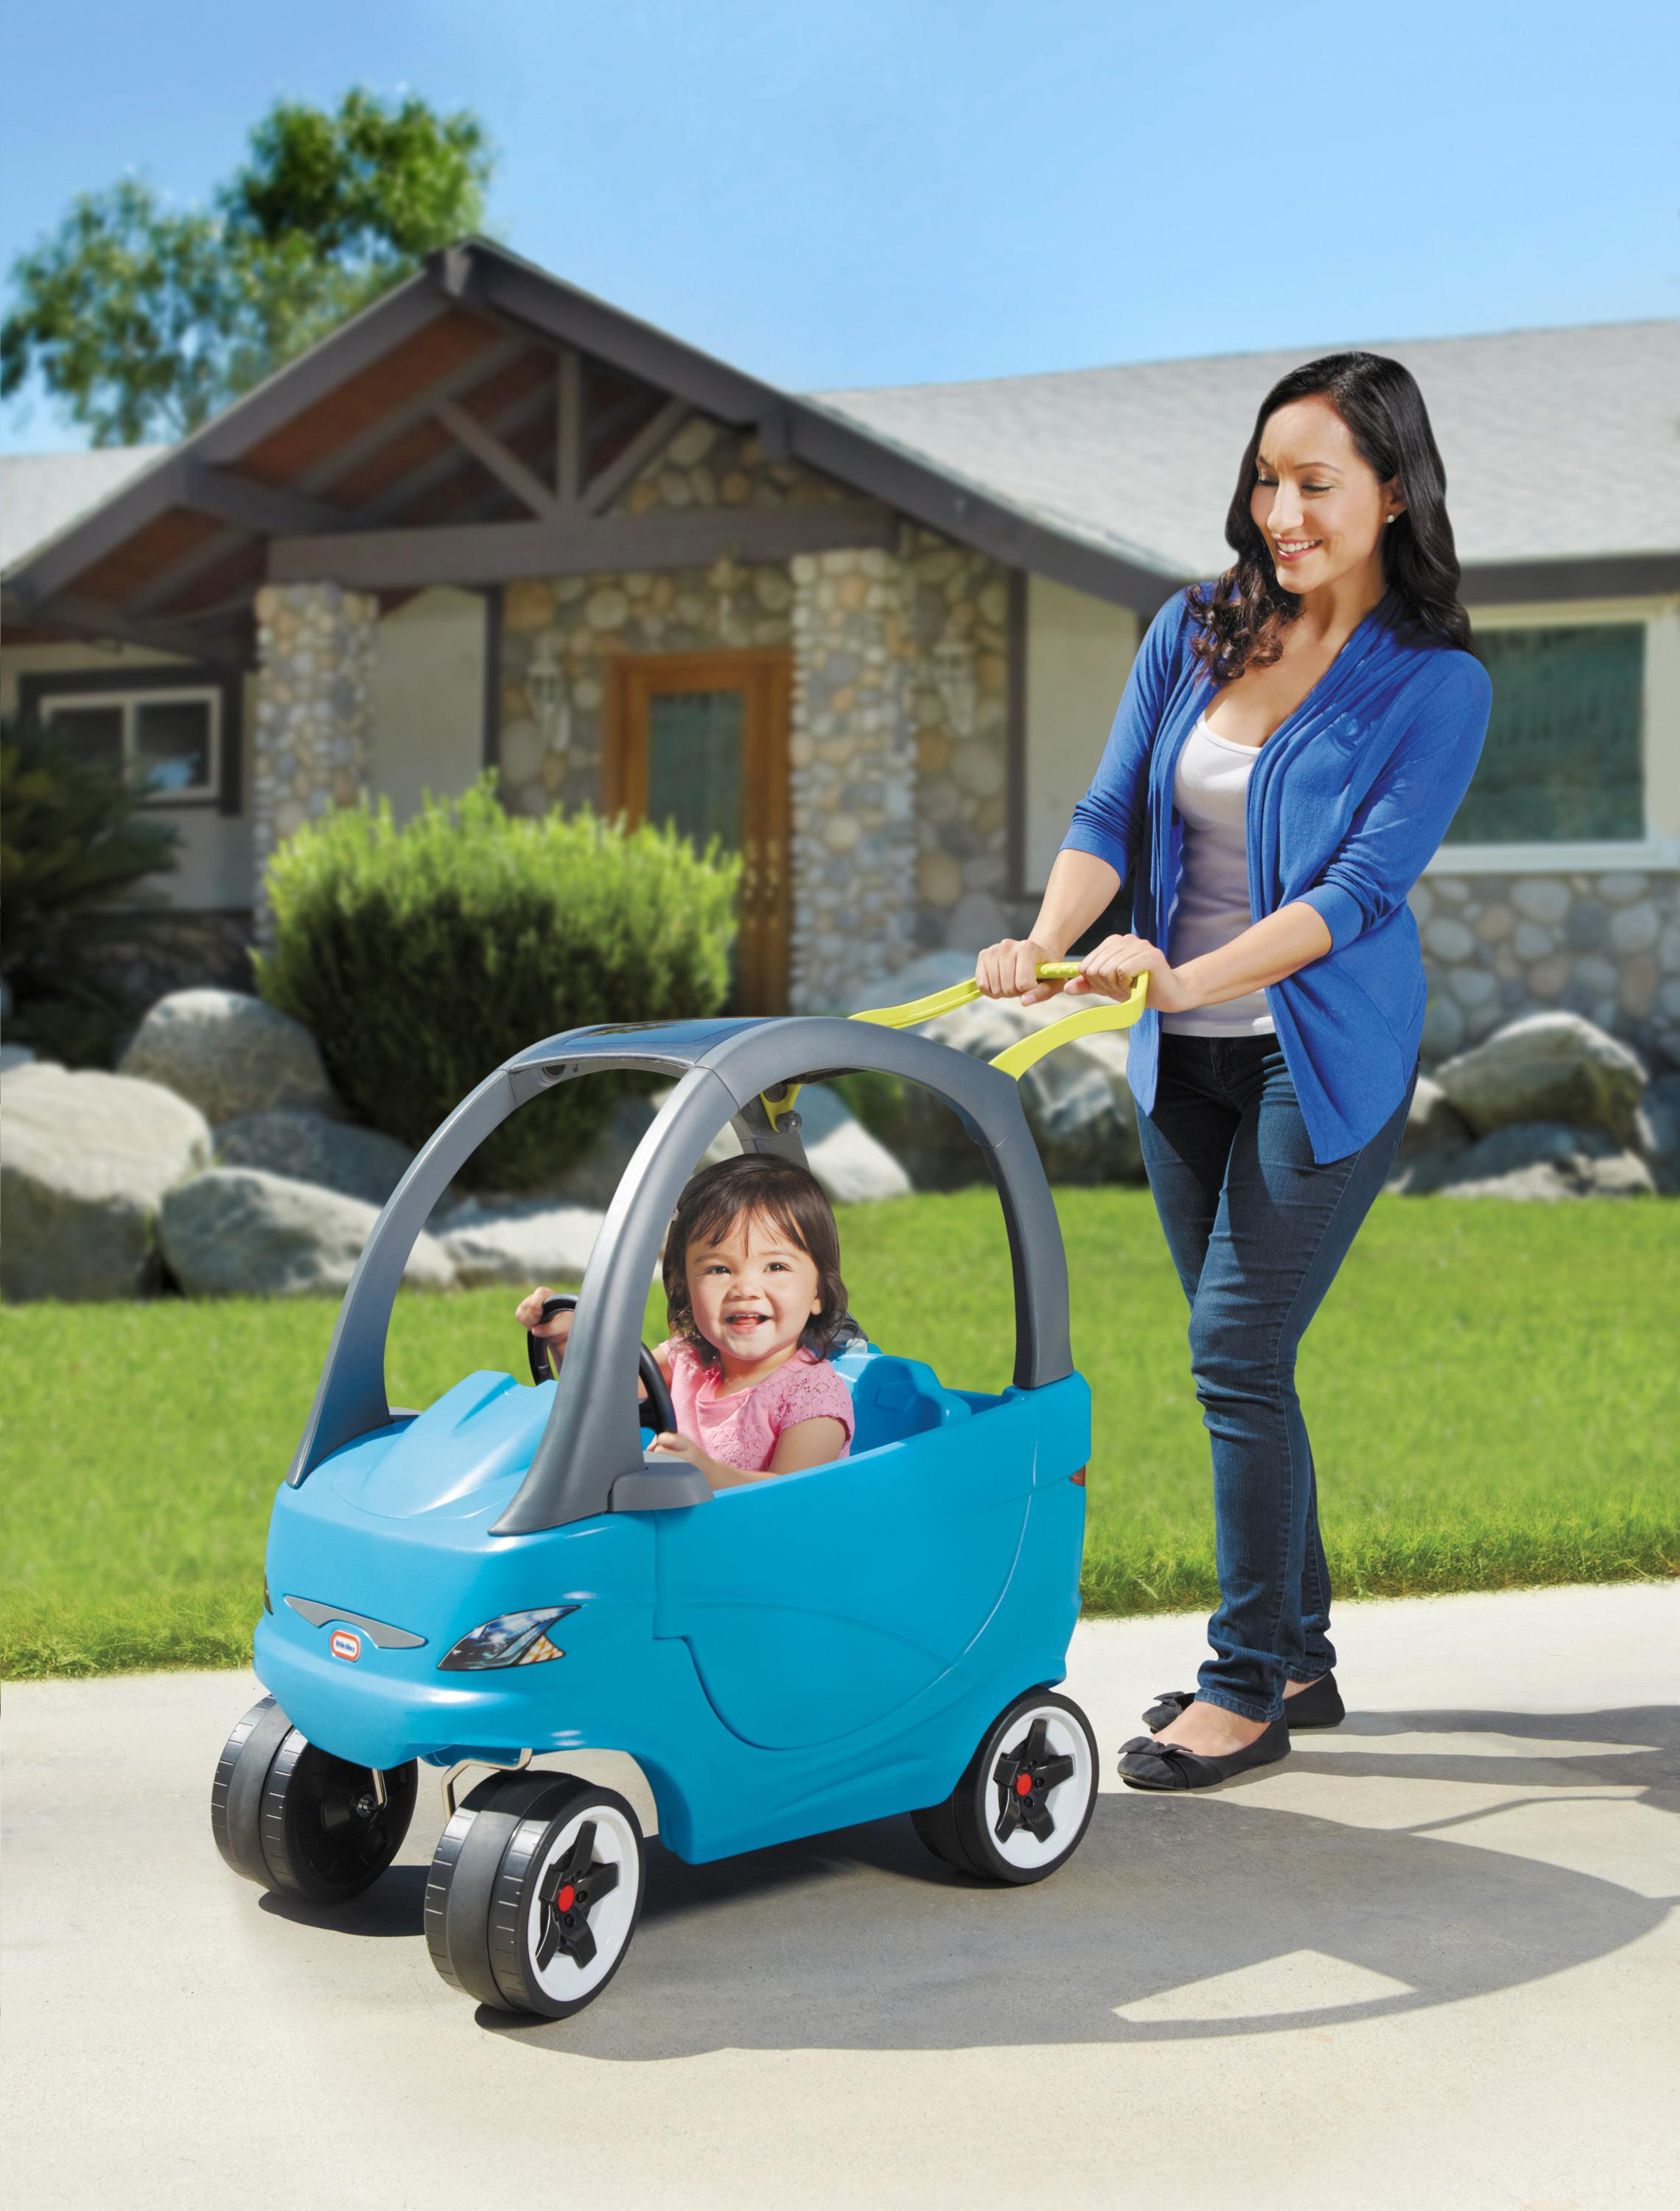 Amazon.com: Little Tikes Cozy Coupe Sport Ride-On: Toys